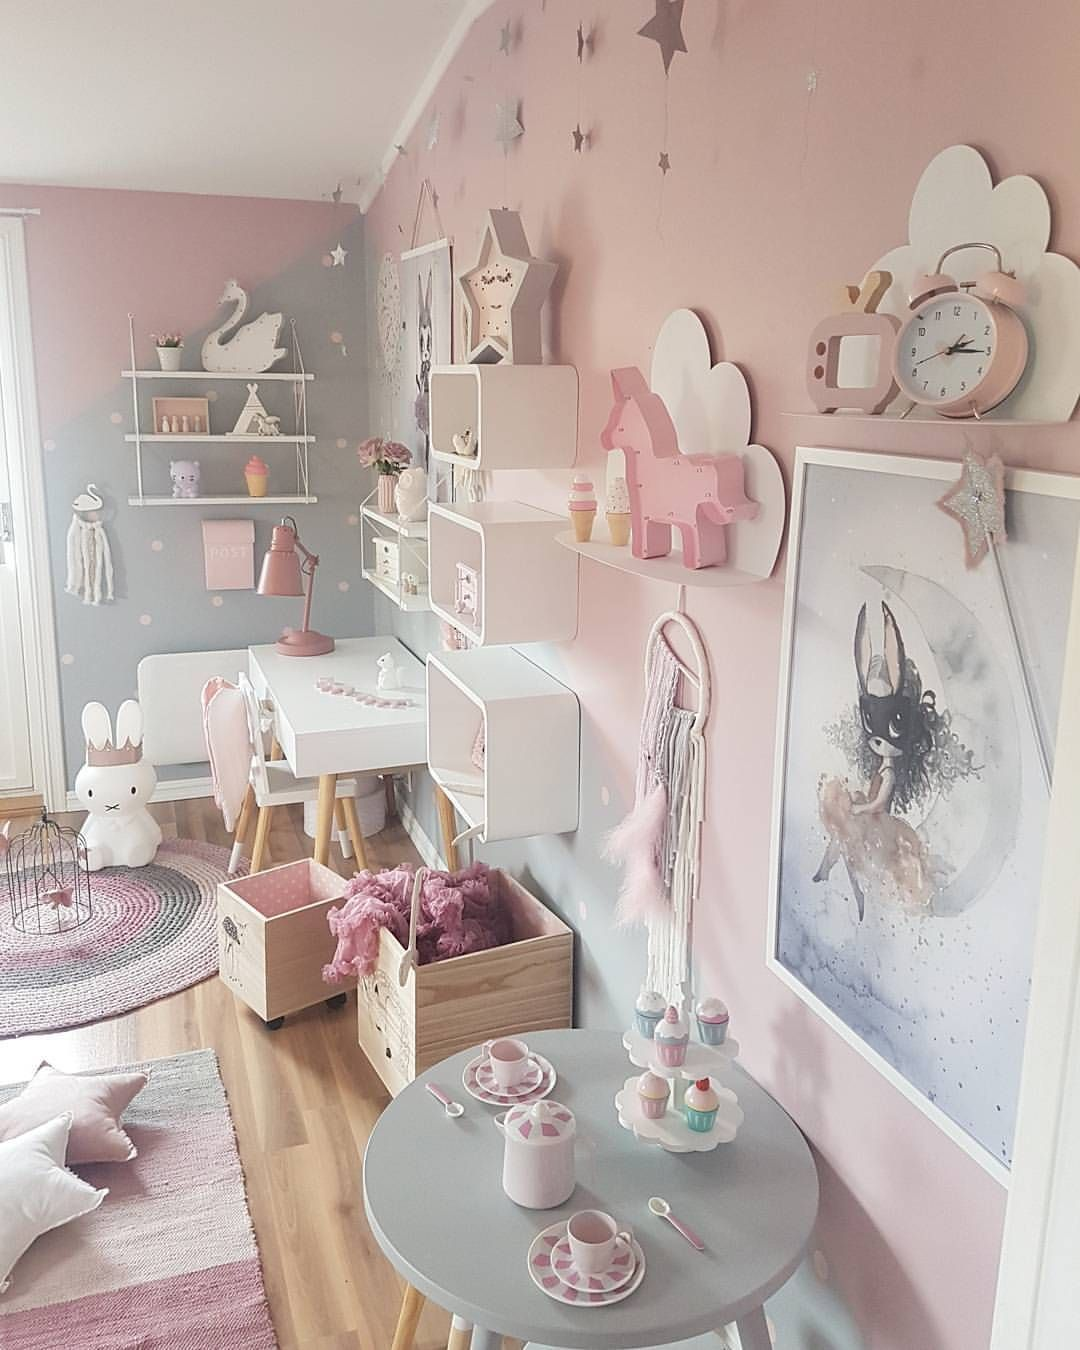 Small Bedroom Furniture Layout Bedroom Posters Vintage Bedroom Curtain Ideas Bedroom Interior Design For Kids: 18 Luxurious Pink Gray Nursery Room